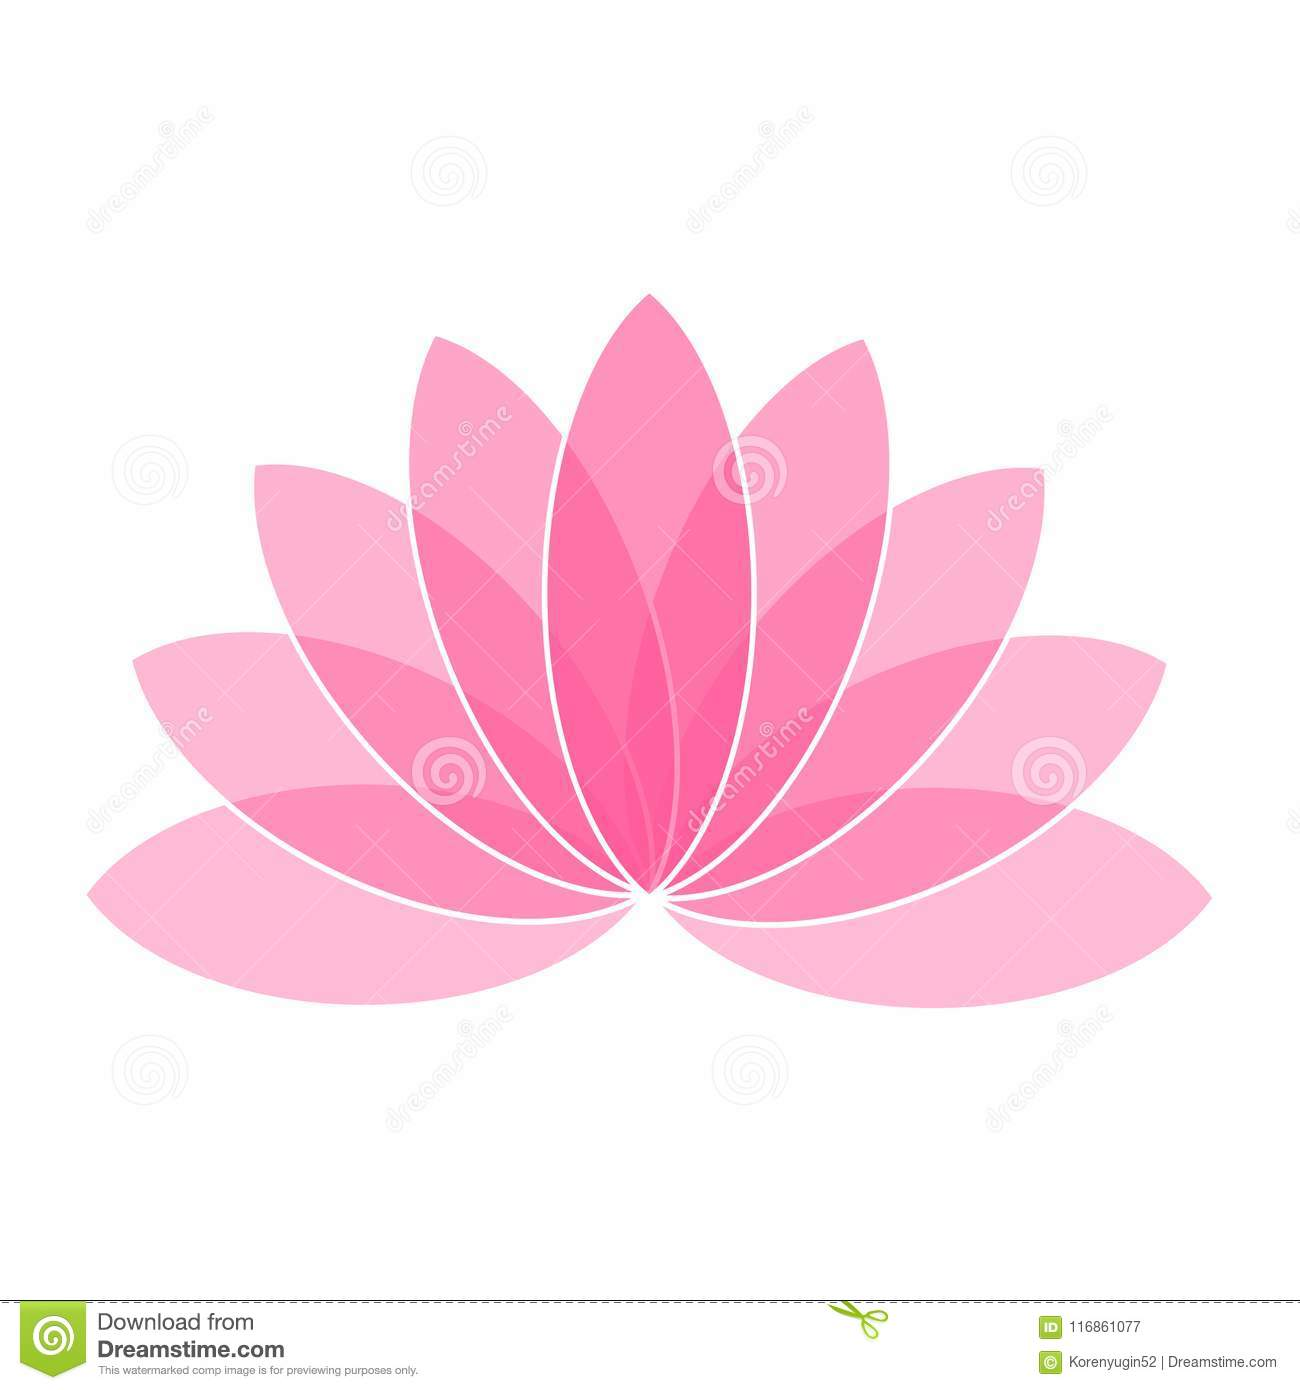 Pink lotus flower icon logo on white background illustration stock download pink lotus flower icon logo on white background illustration stock vector illustration of petals izmirmasajfo